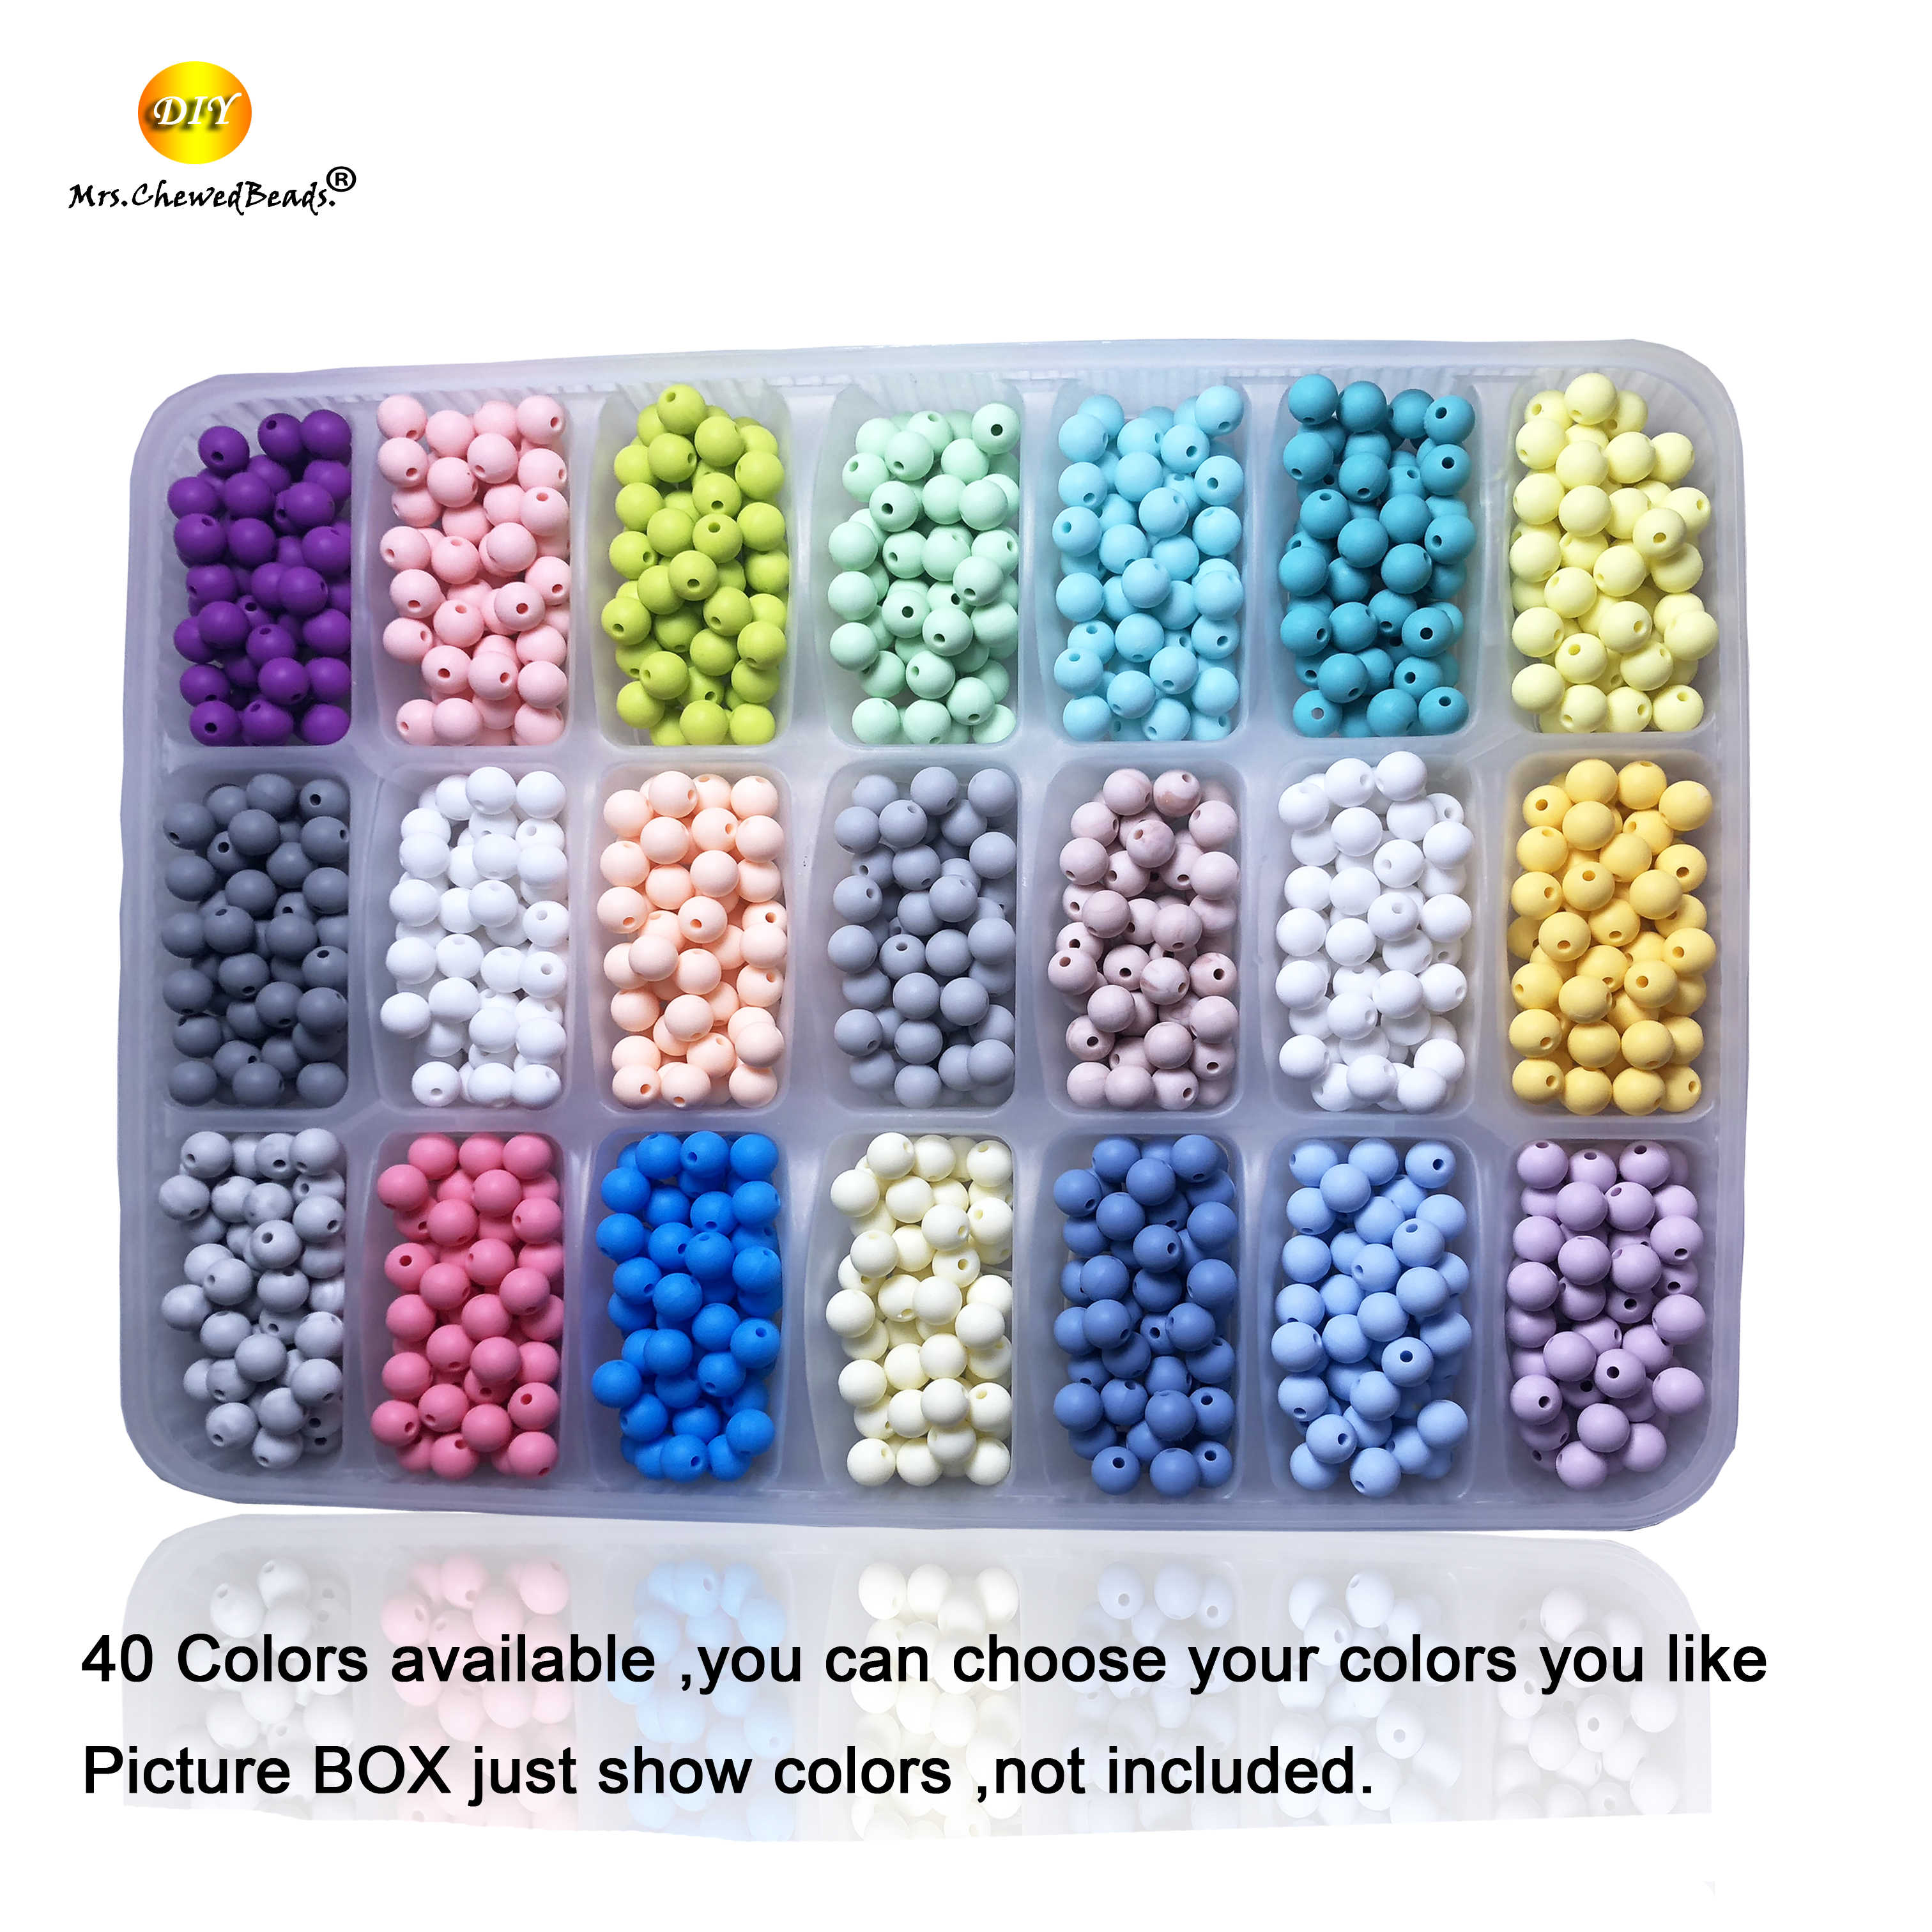 Diamond Leaf Bulk Lot of 100 Loose Silicone Beads in 11 colours